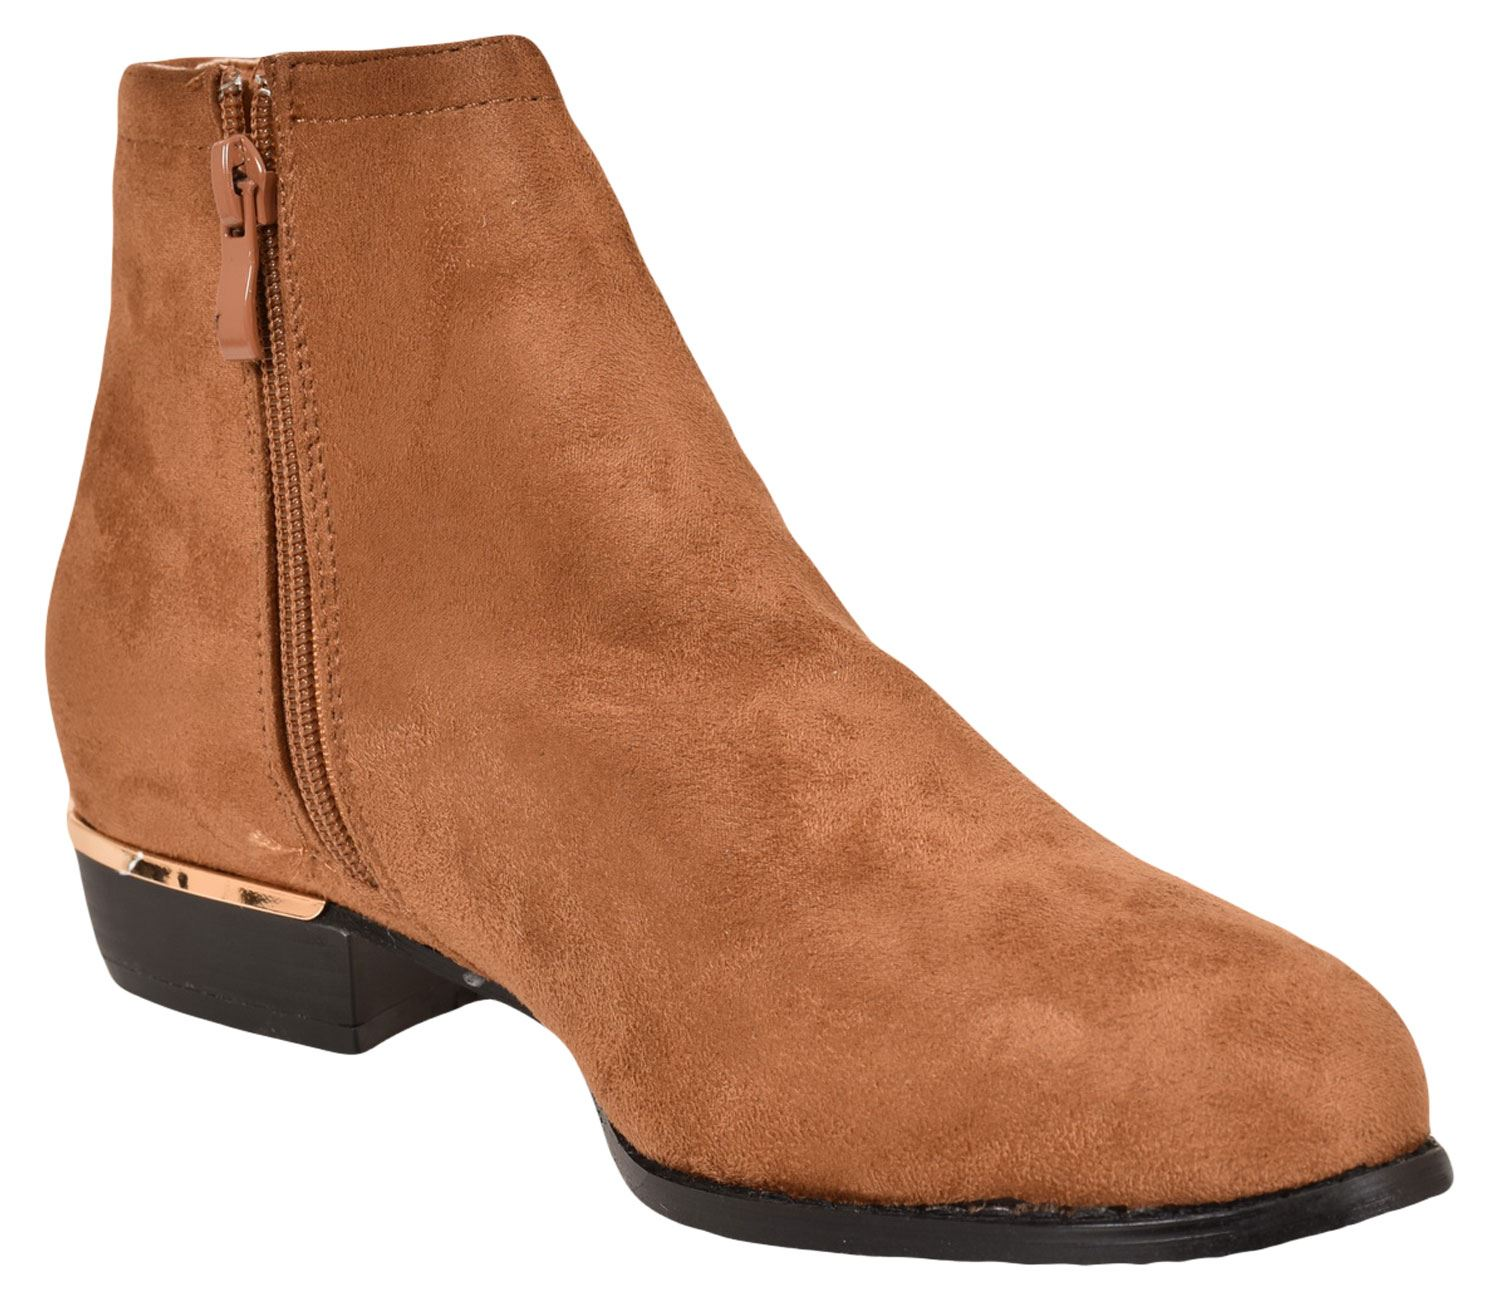 New-Women-Chelsea-Ankle-Boots-Winter-Block-Heel-Ladies-Biker-Style-Boots thumbnail 38